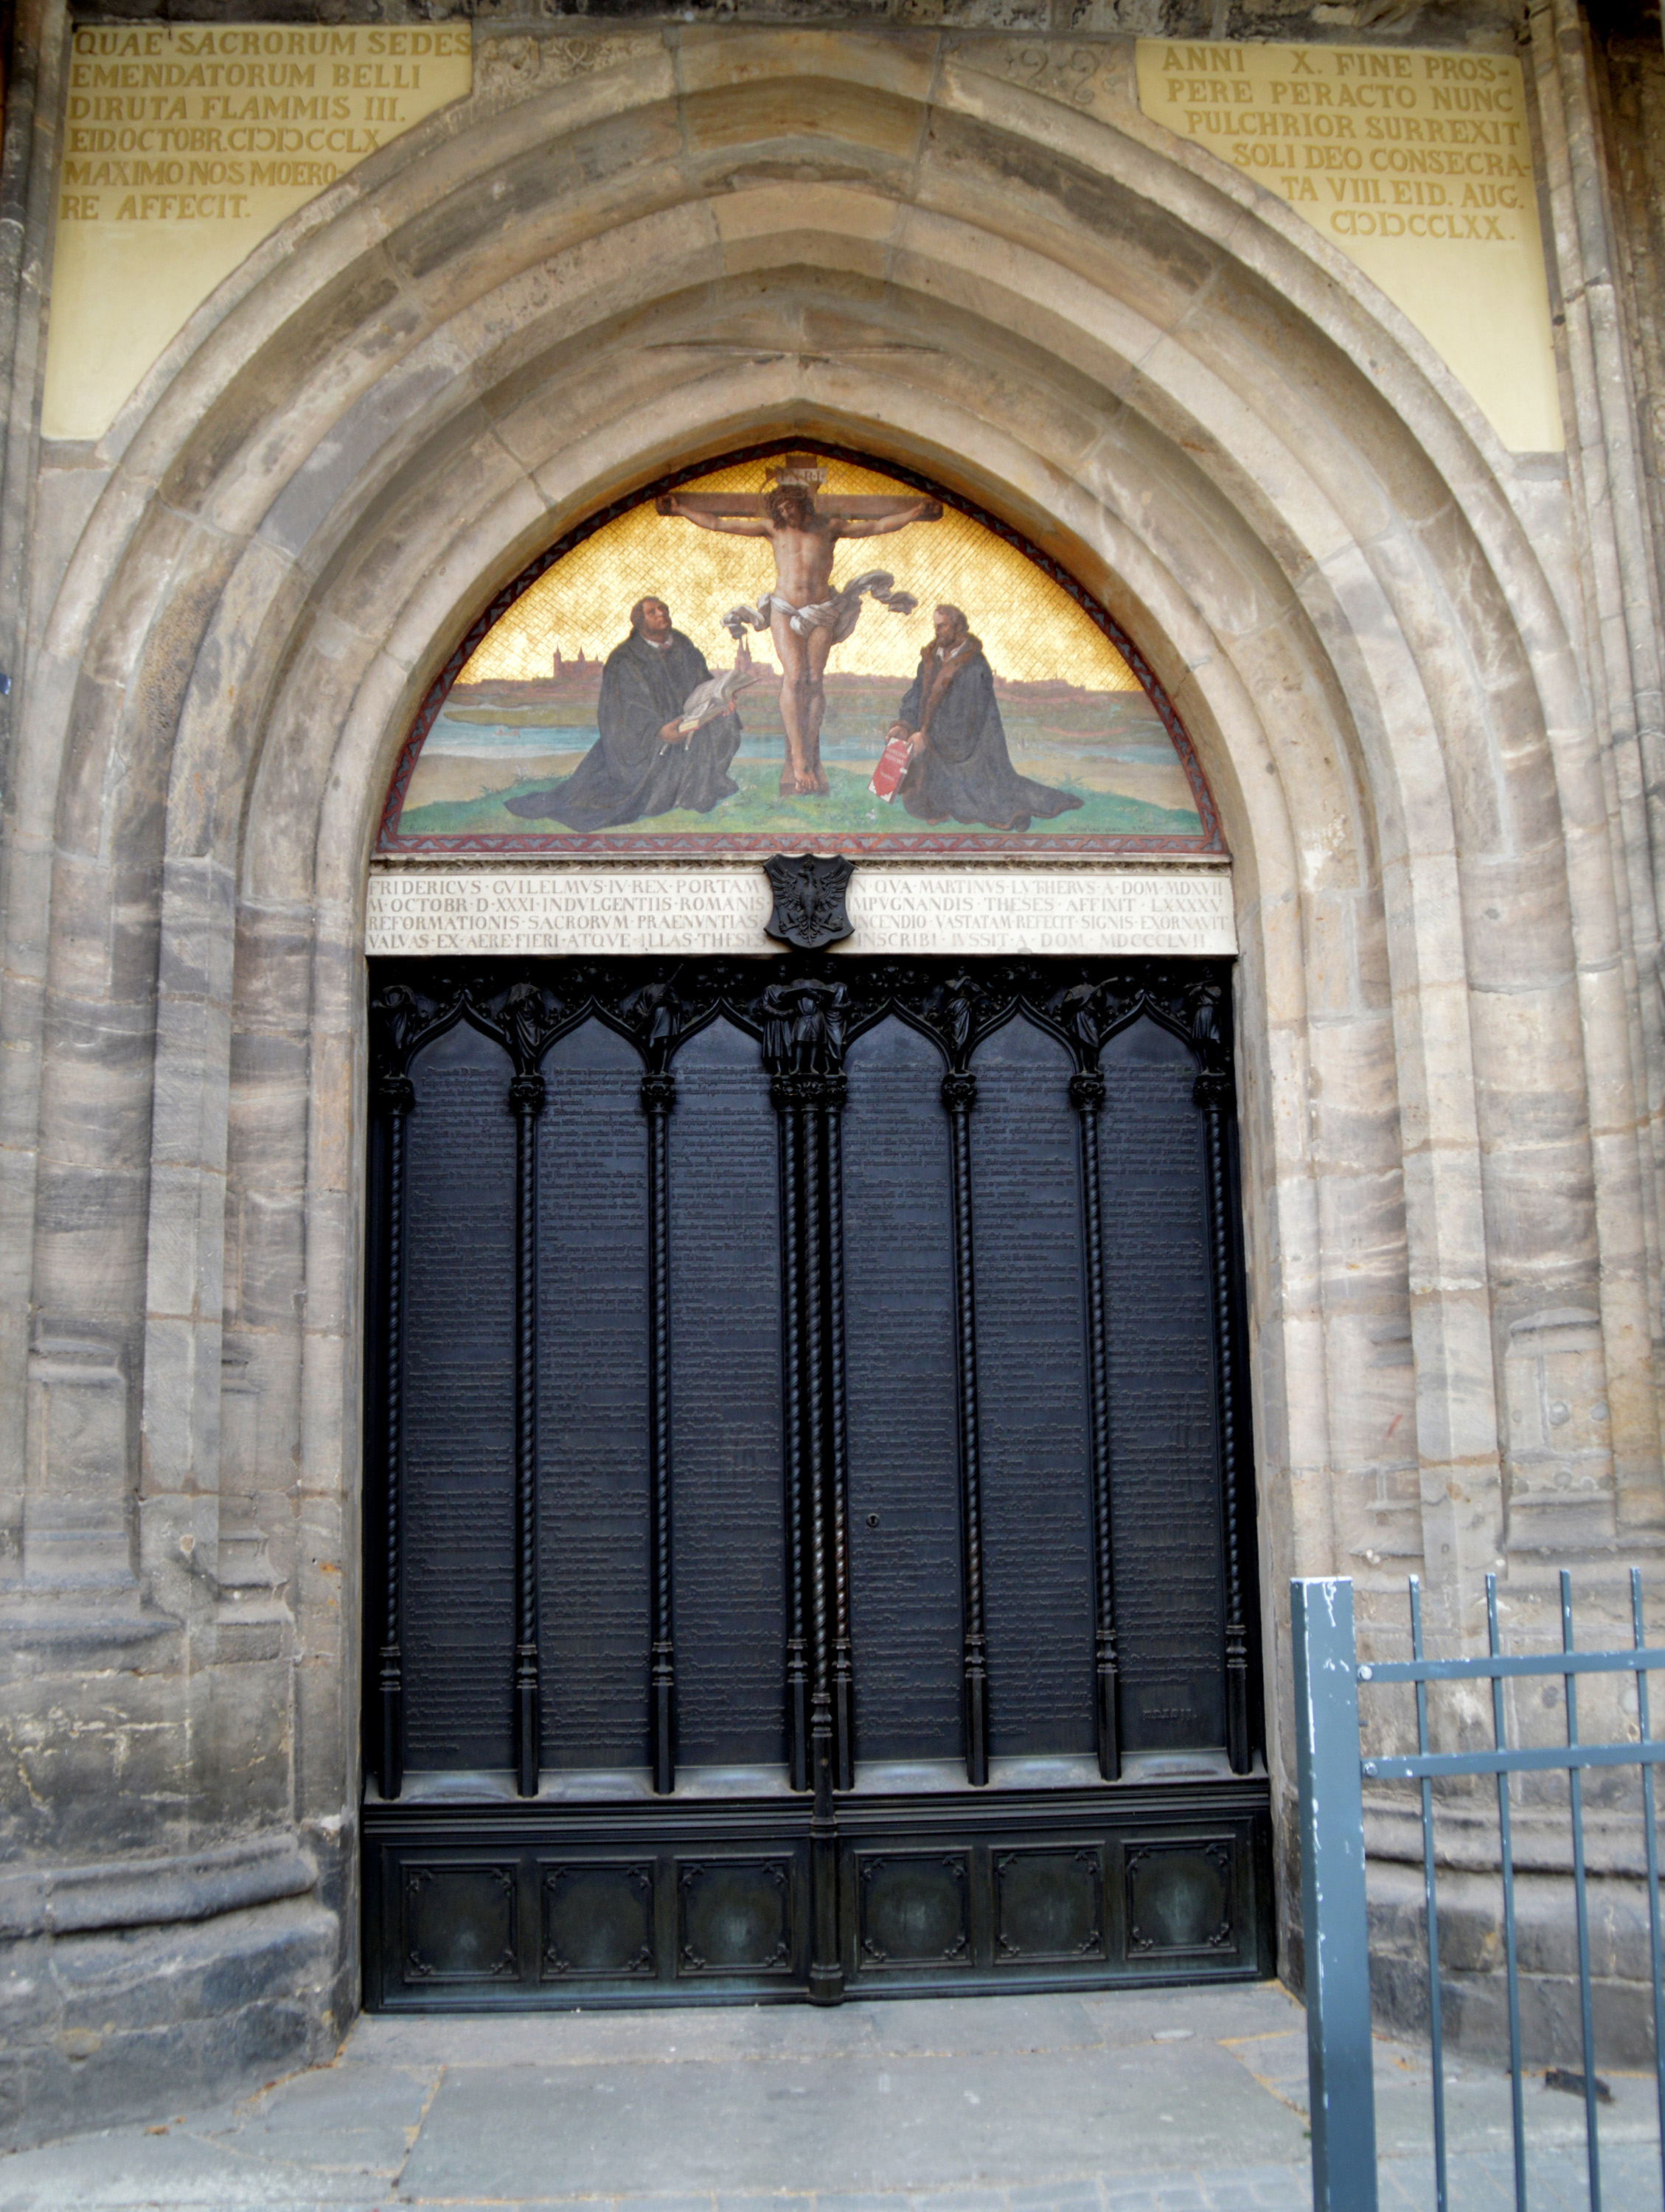 The door at Wittenberg's Castle Church where Martin Luther reportedly posted his 95 Theses on Oct. 31, 1517, launching the Protestant Reformation. At the time, the door served as a sort of university bulletin board. Today, his theses are engraved in the door. Photo by Klaus Ulrich Ruof.